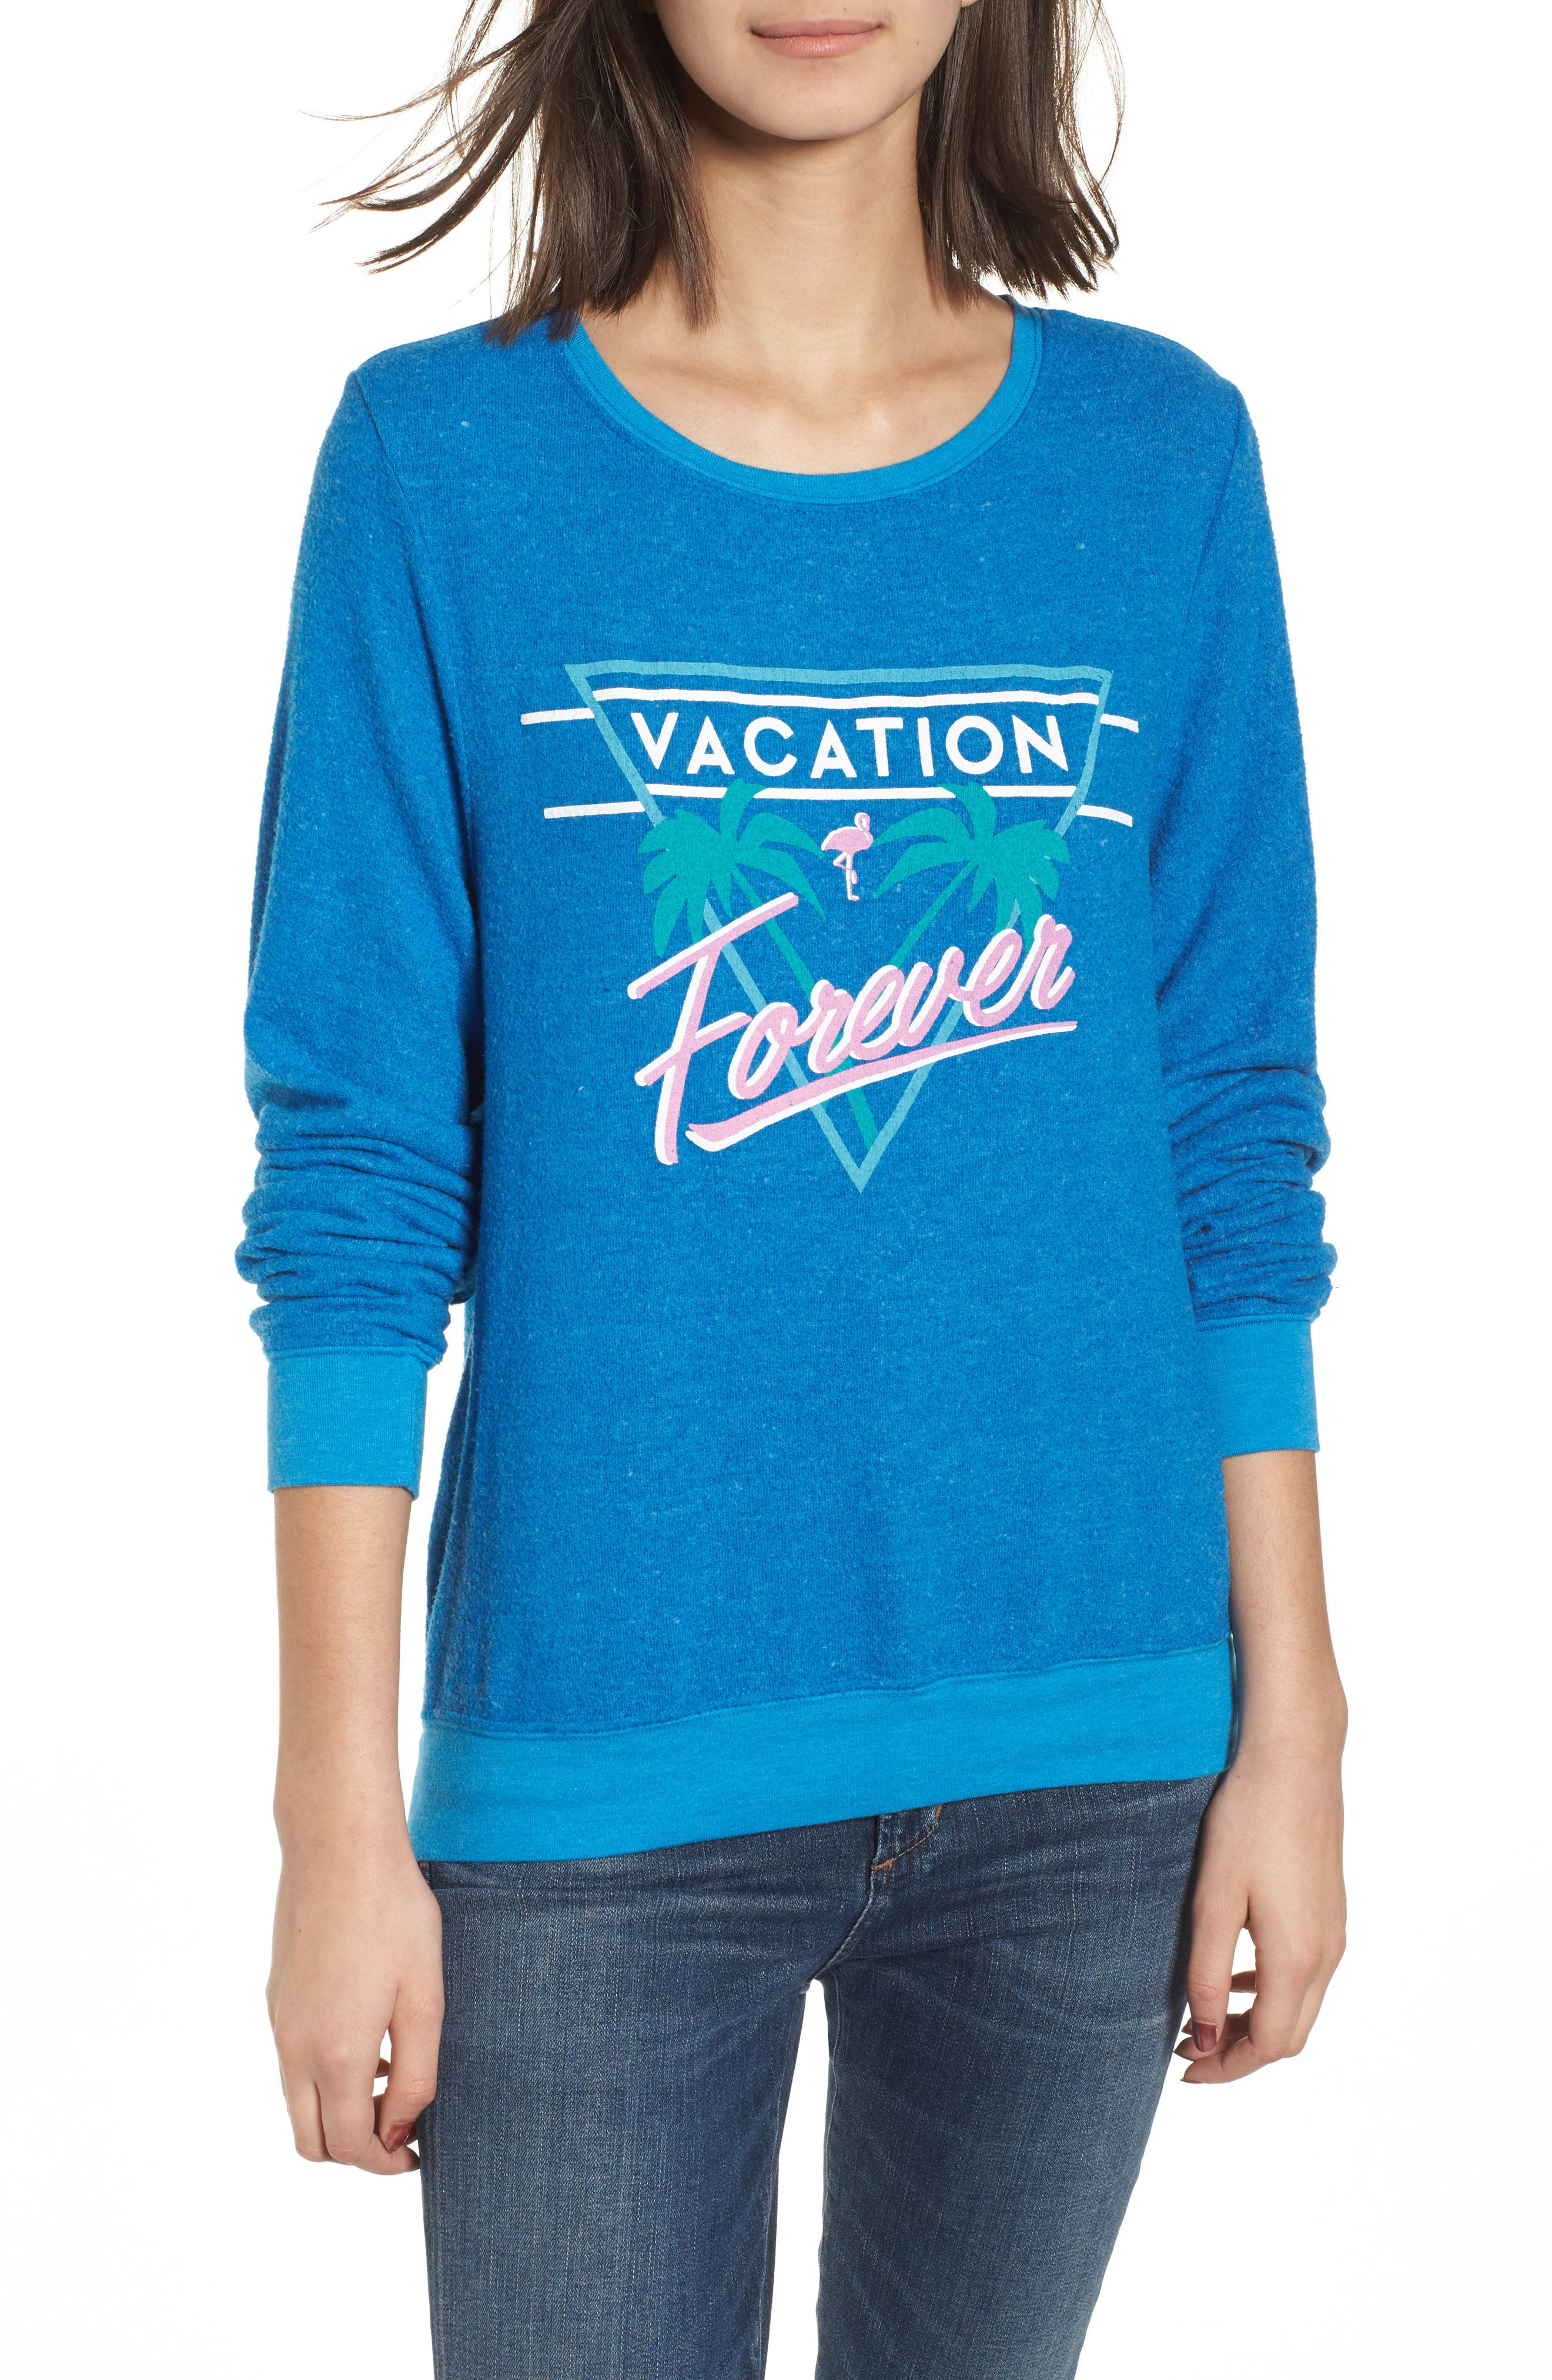 Vacation Forever Sweatshirt,                         Main,                         color, 401